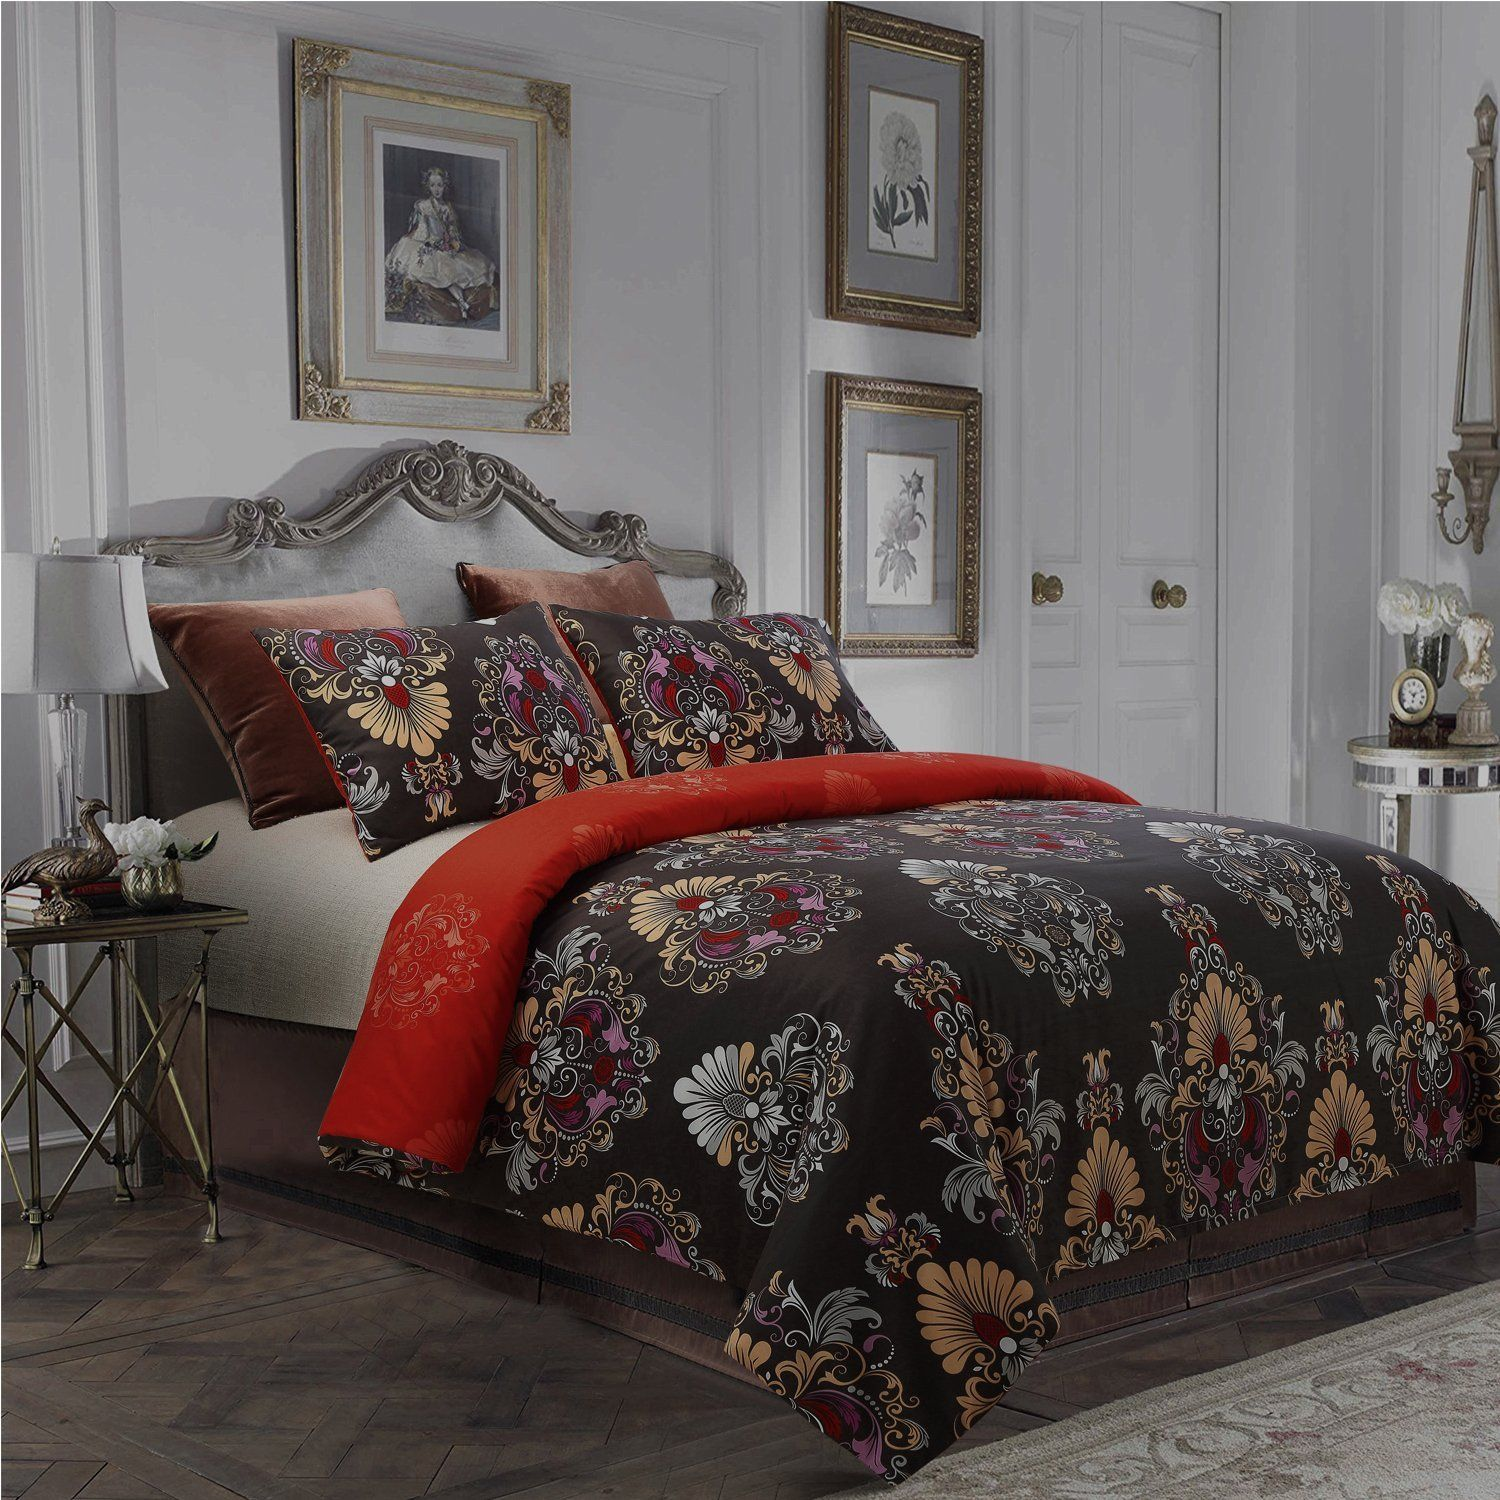 PRODUCT FEATURES The duvet cover and matching pillow sham